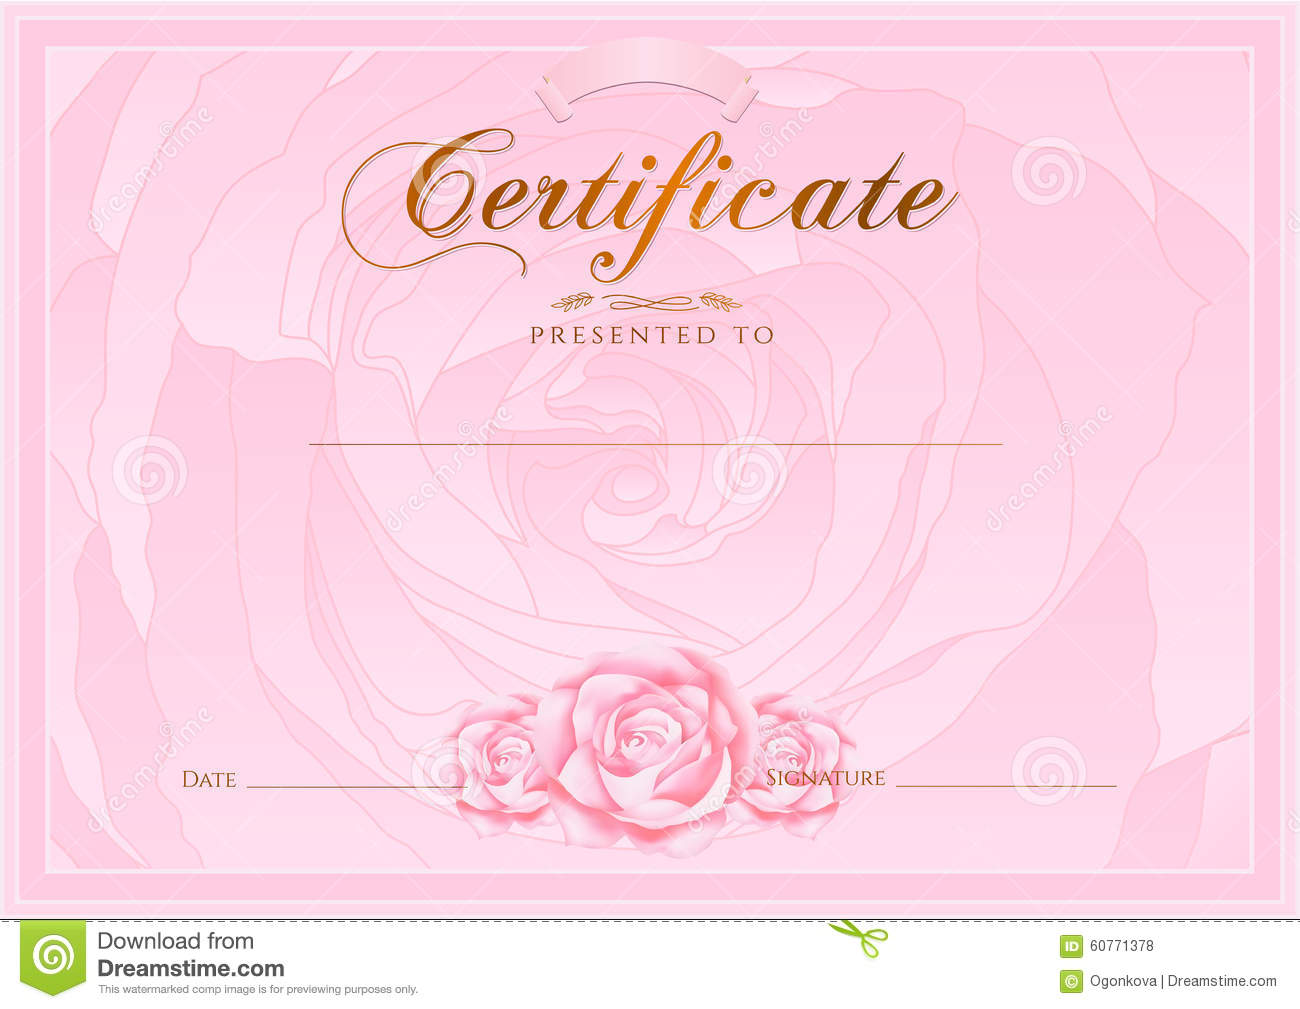 Certificate Frame Diploma Award Background Stock Photo - Image of ...